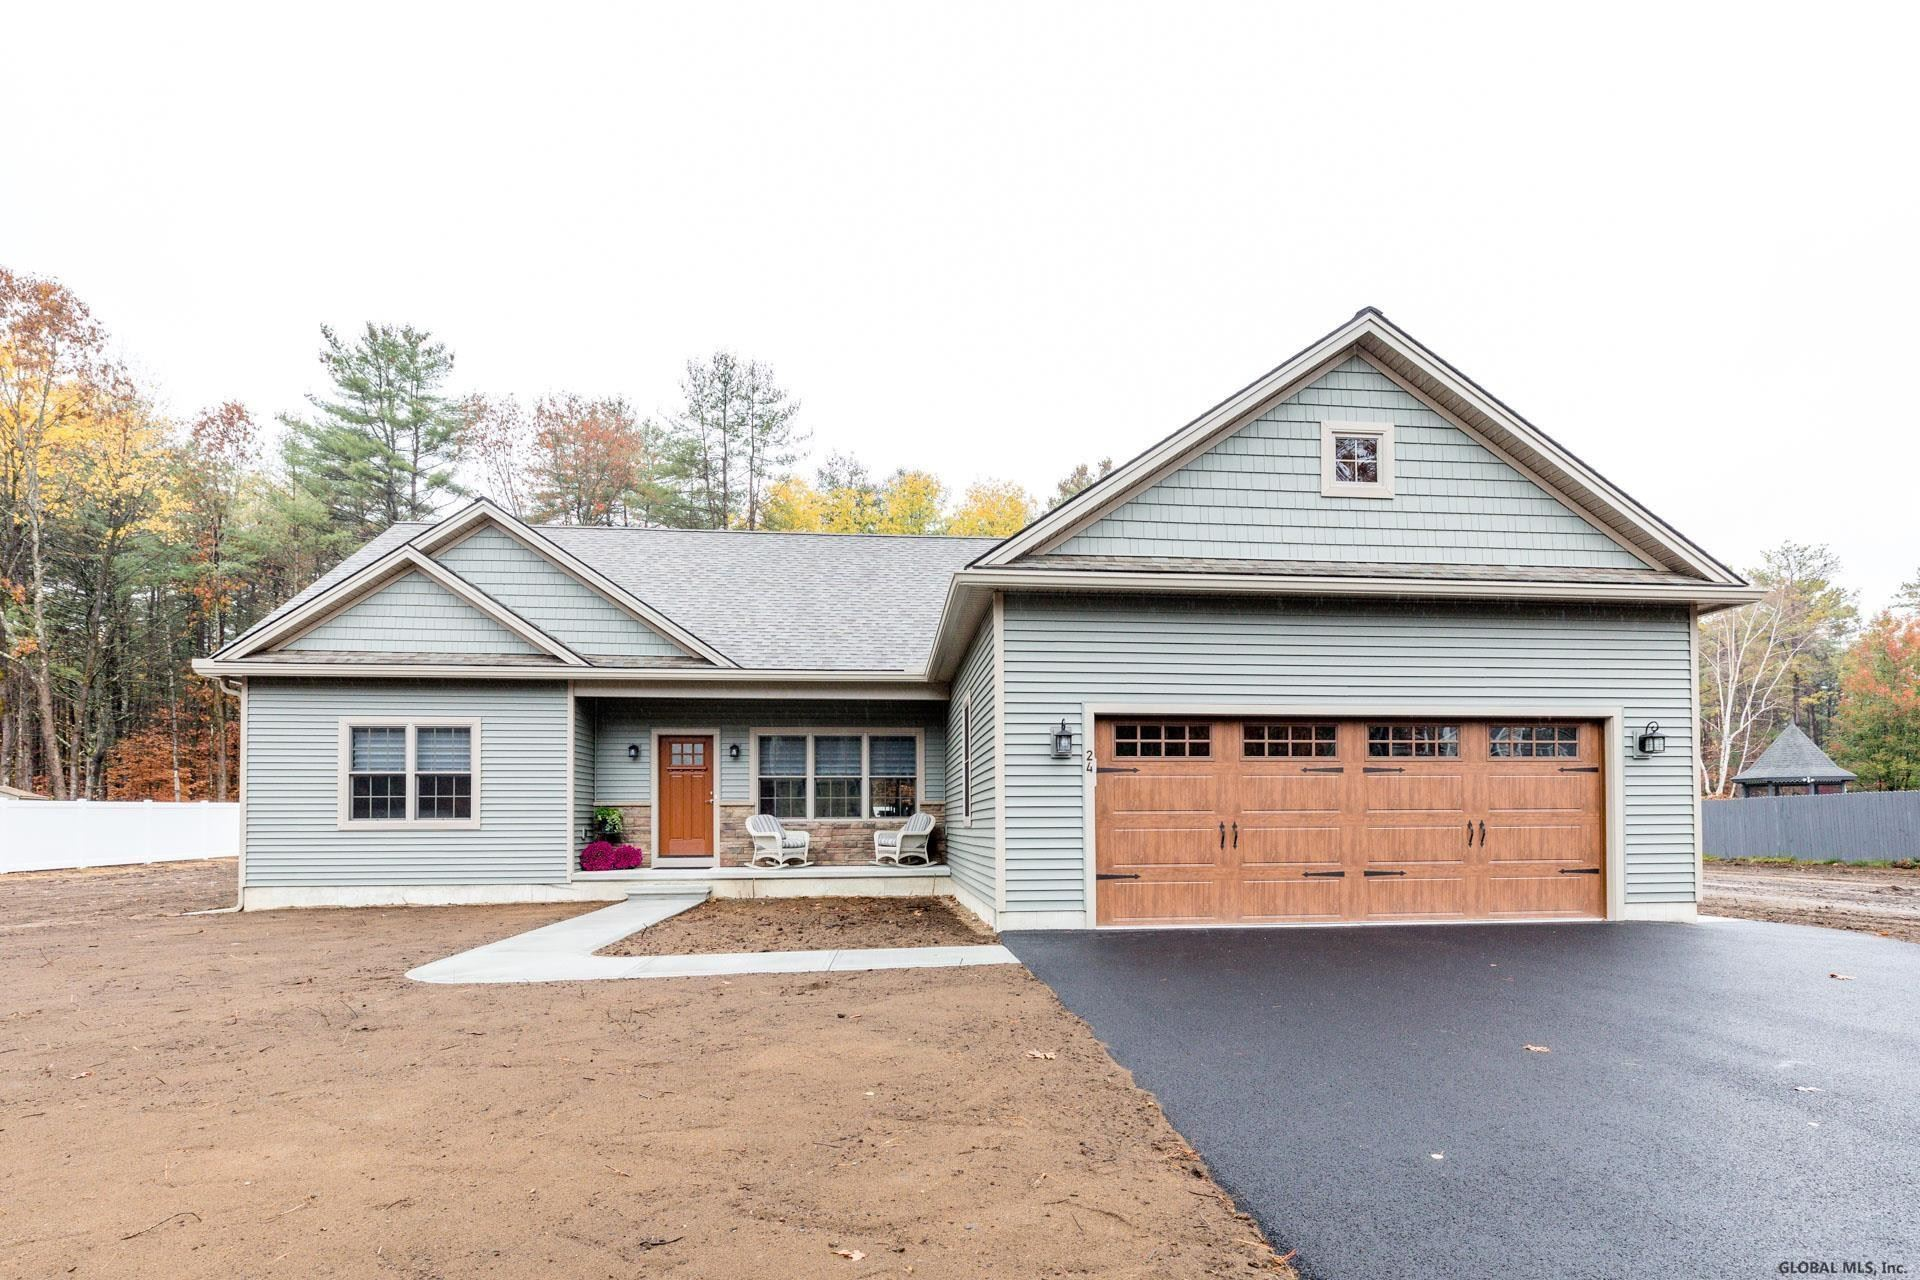 LADY SLIPPER DR                                                                               Queensbury                                                                      , NY - $399,900